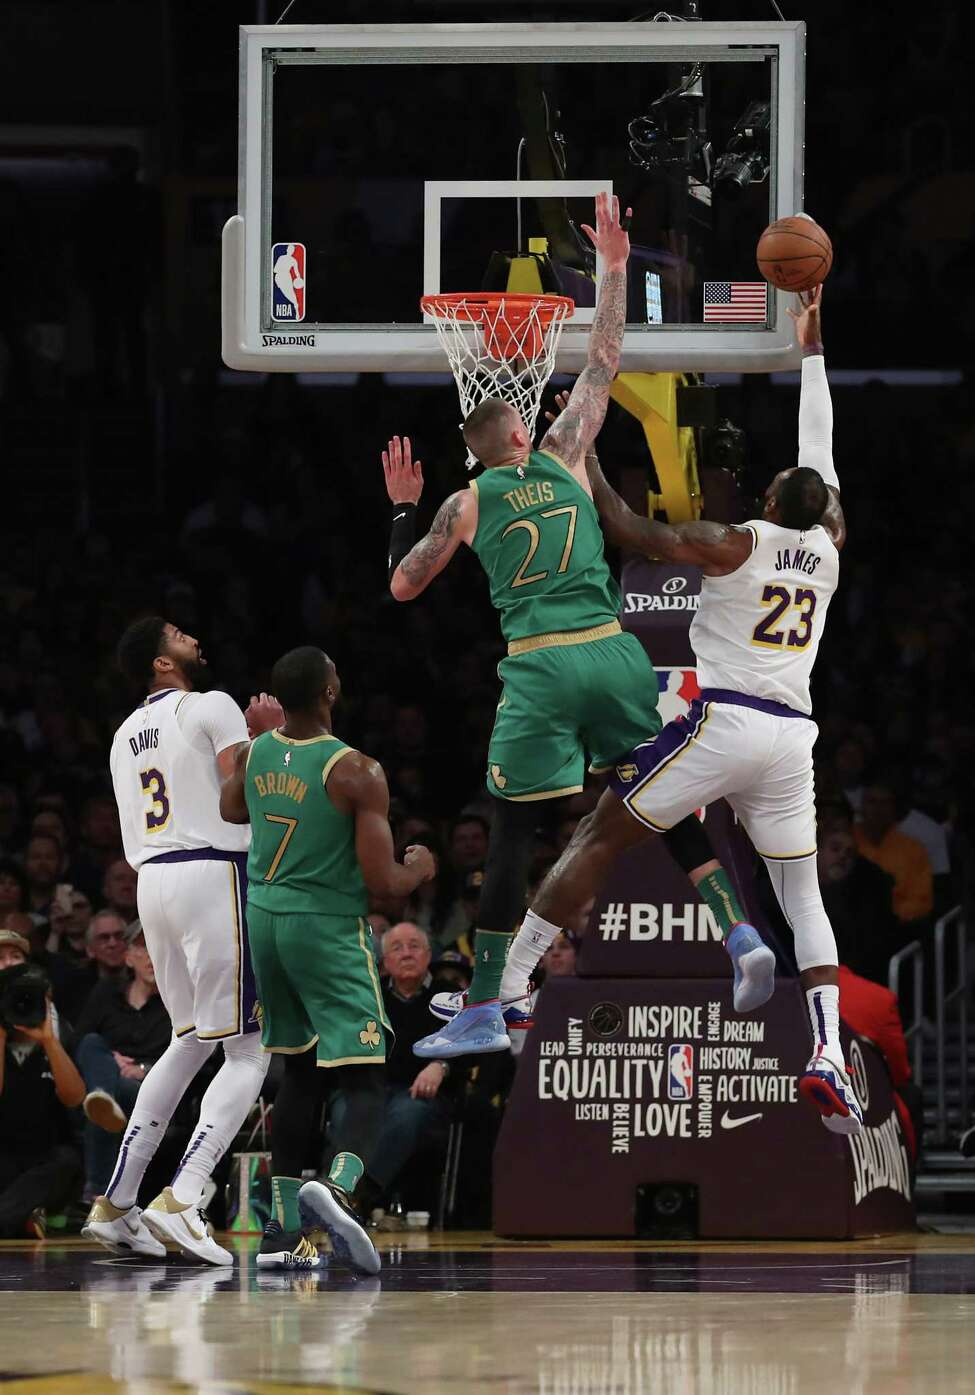 LOS ANGELES, CALIFORNIA - FEBRUARY 23: LeBron James #23 of the Los Angeles Lakers goes to the basket during the third quarter against Daniel Theis #27 of the Boston Celtics at Staples Center on February 23, 2020 in Los Angeles, California. (Photo by Katelyn Mulcahy/Getty Images)